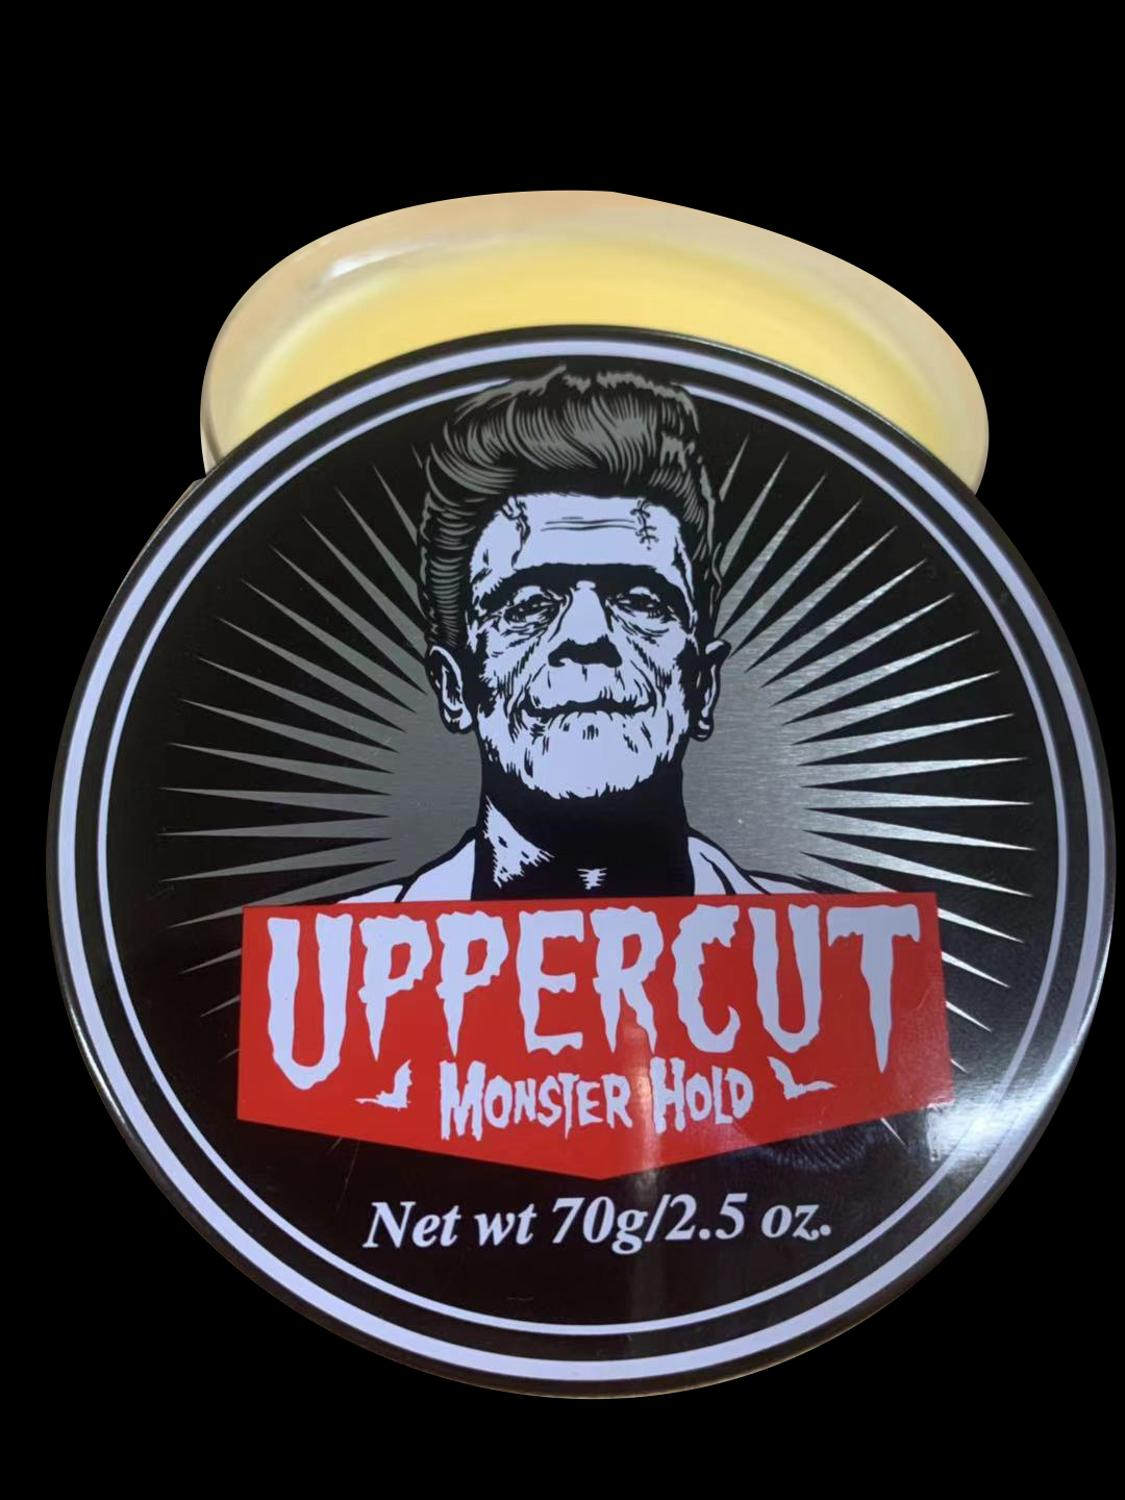 70g Uprepcut Long-lasting Monster Hold Hair Wax/pomade For Hair Styling